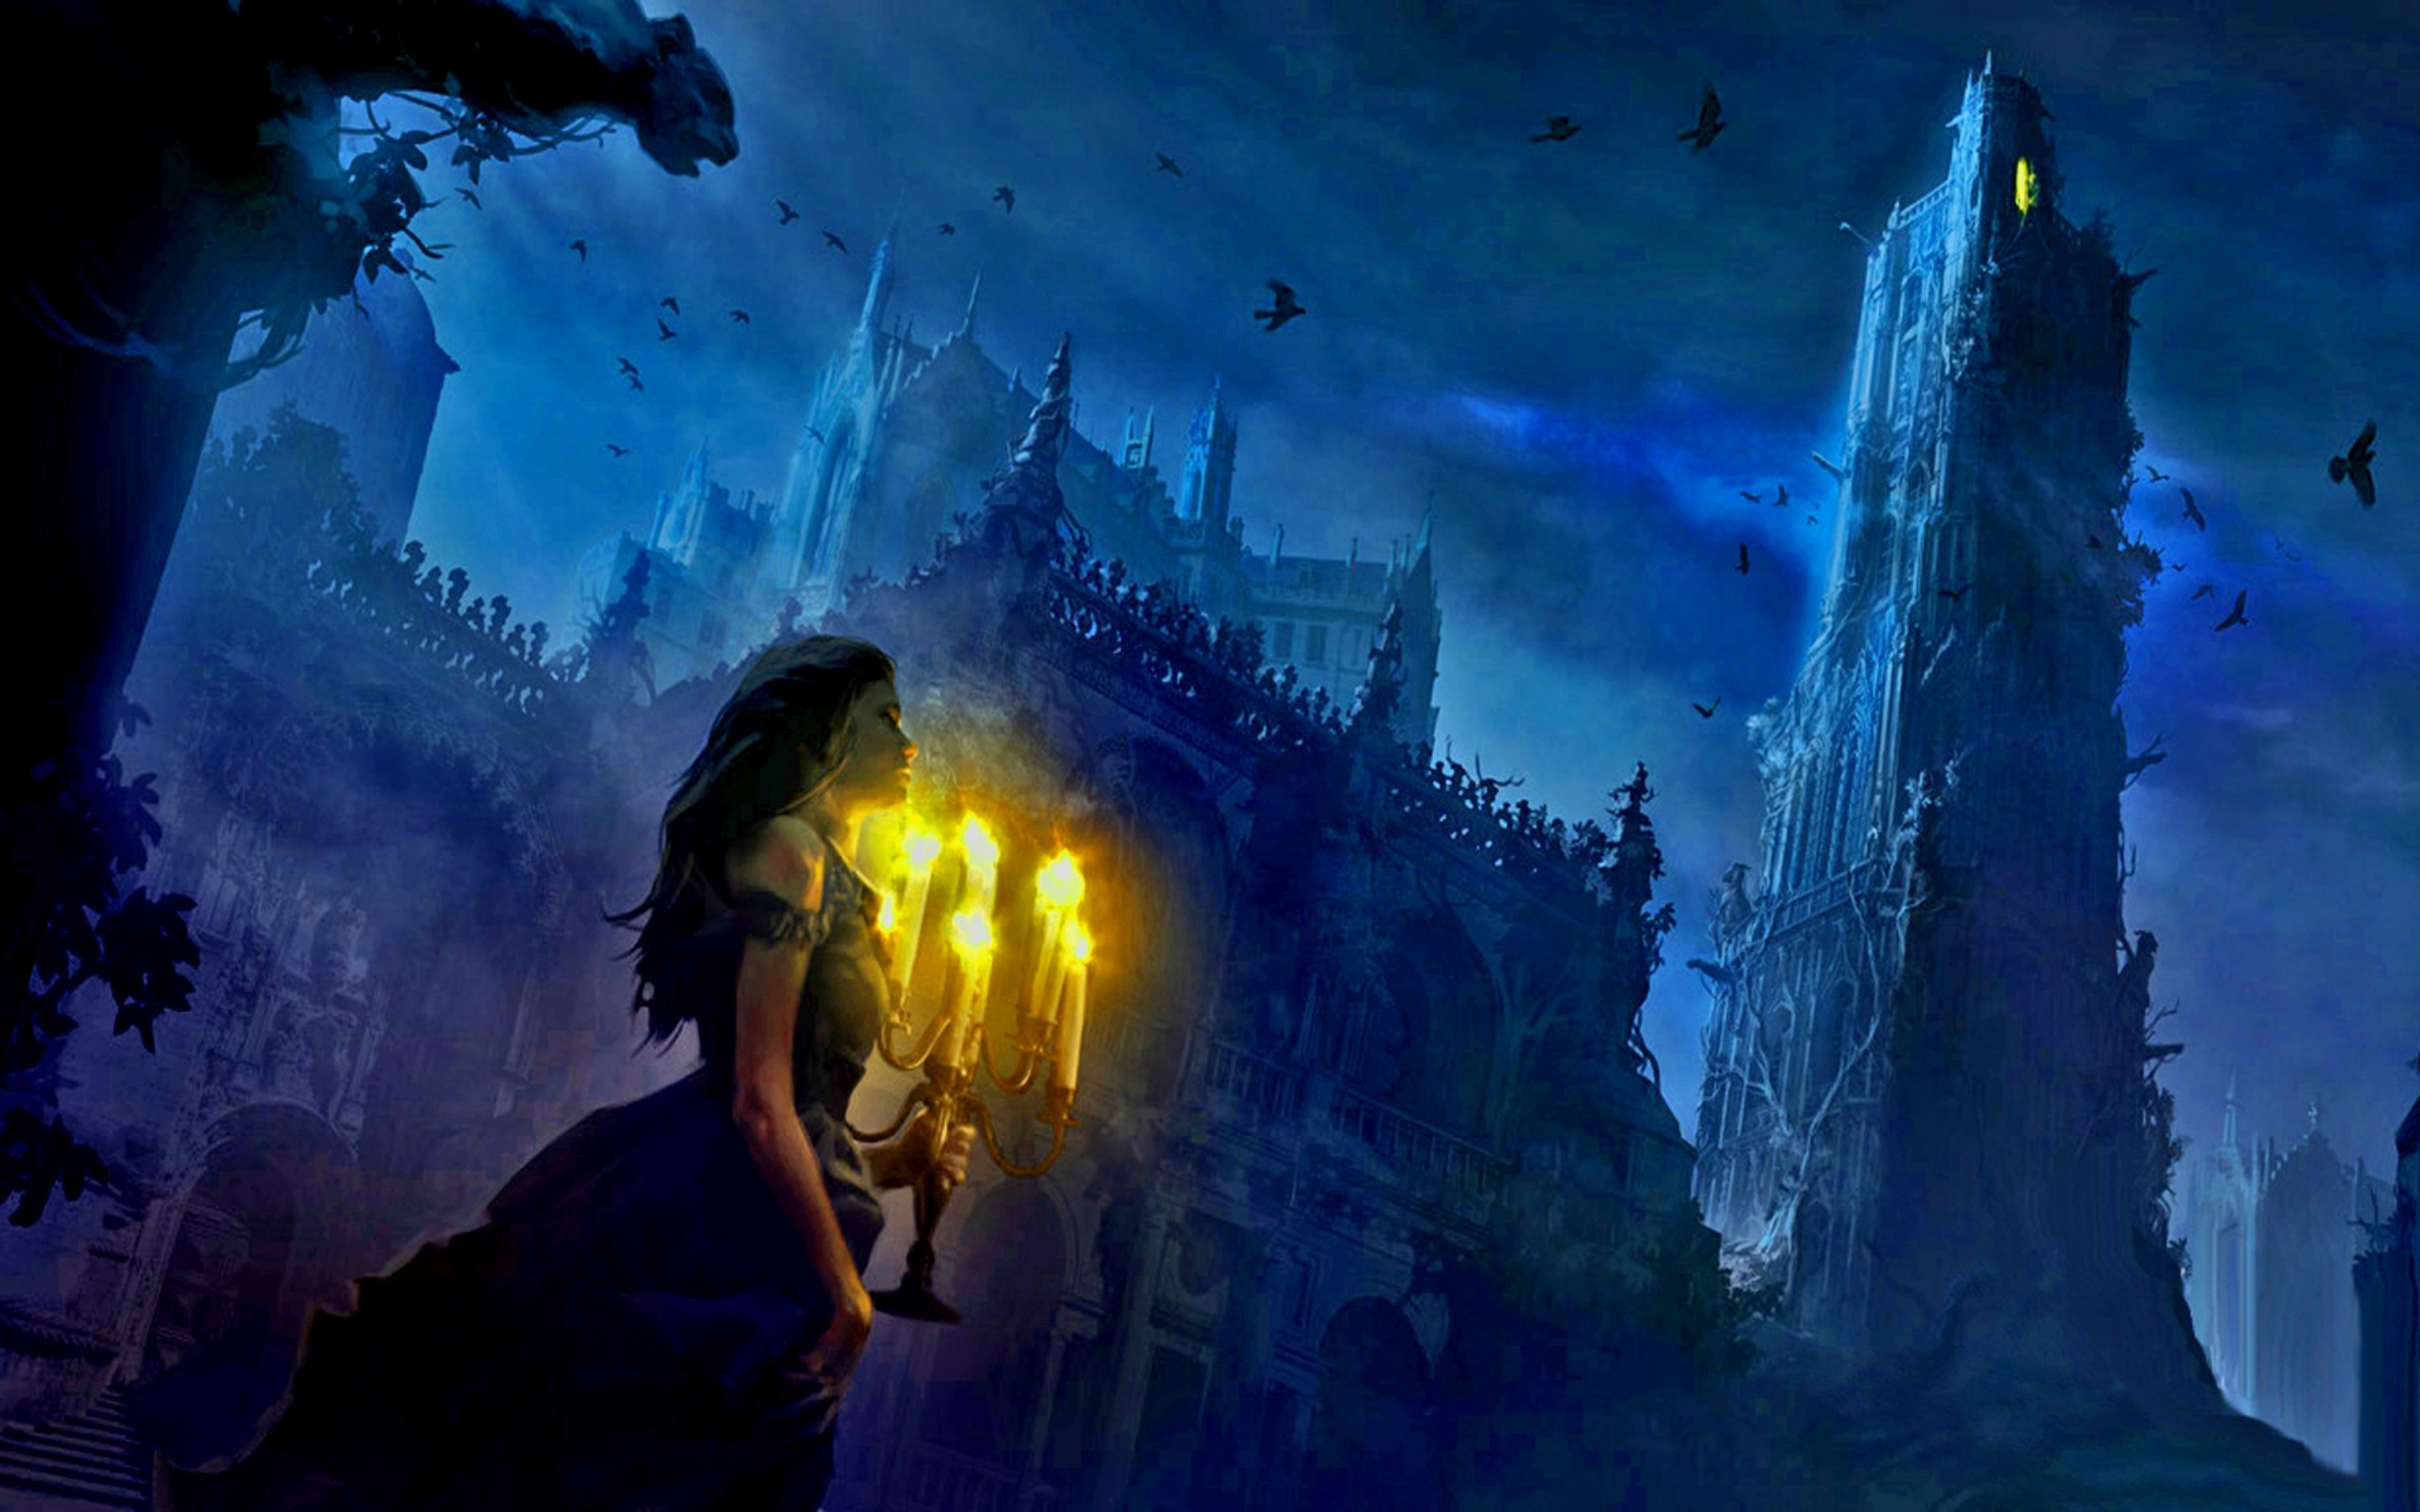 Beauty And The Beast Wallpaper (79+ Images